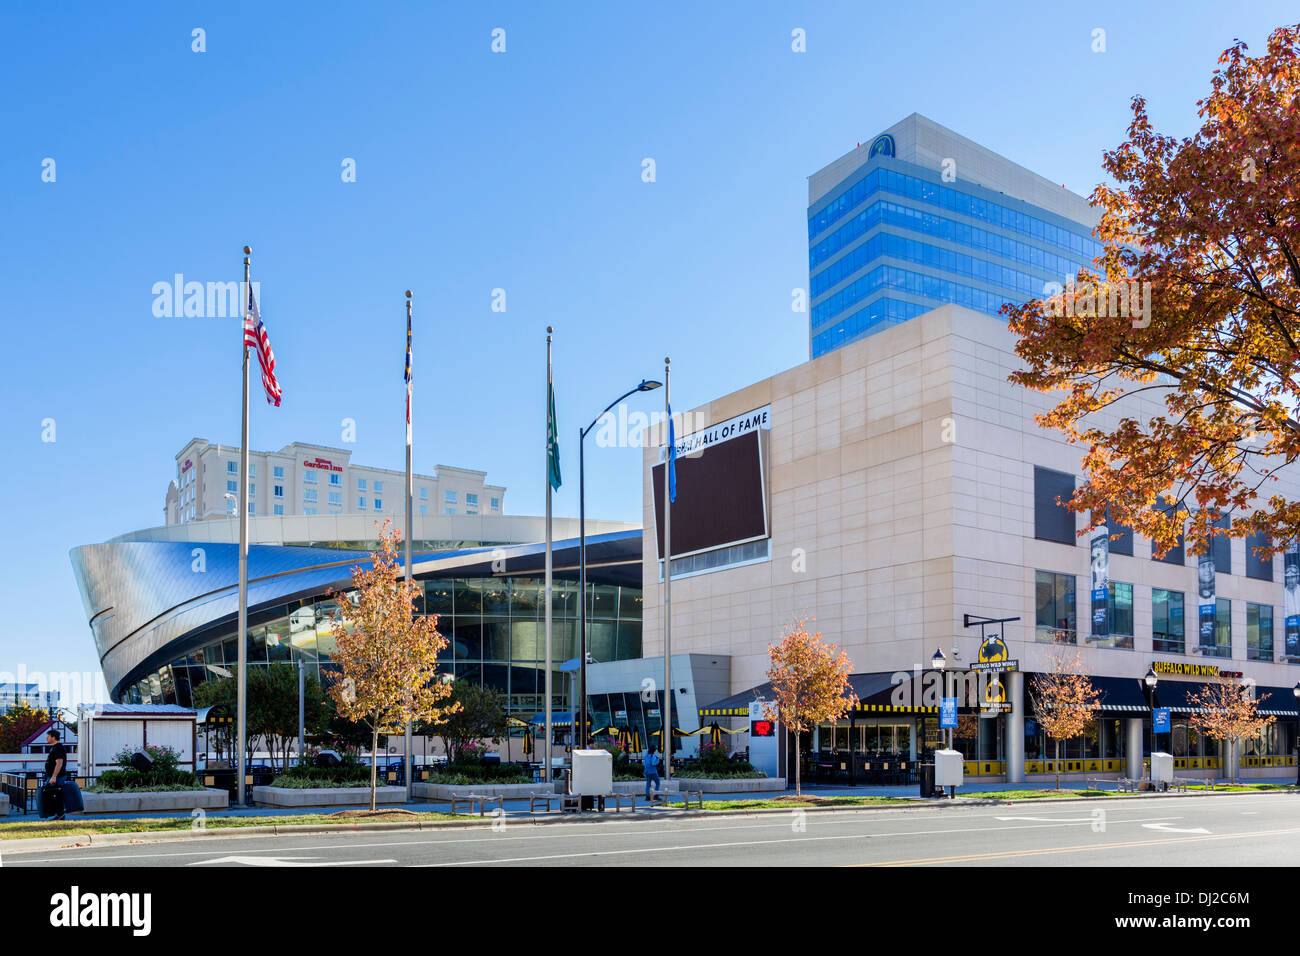 Nascar Hall of Fame, Charlotte, North Carolina, USA - Stock Image